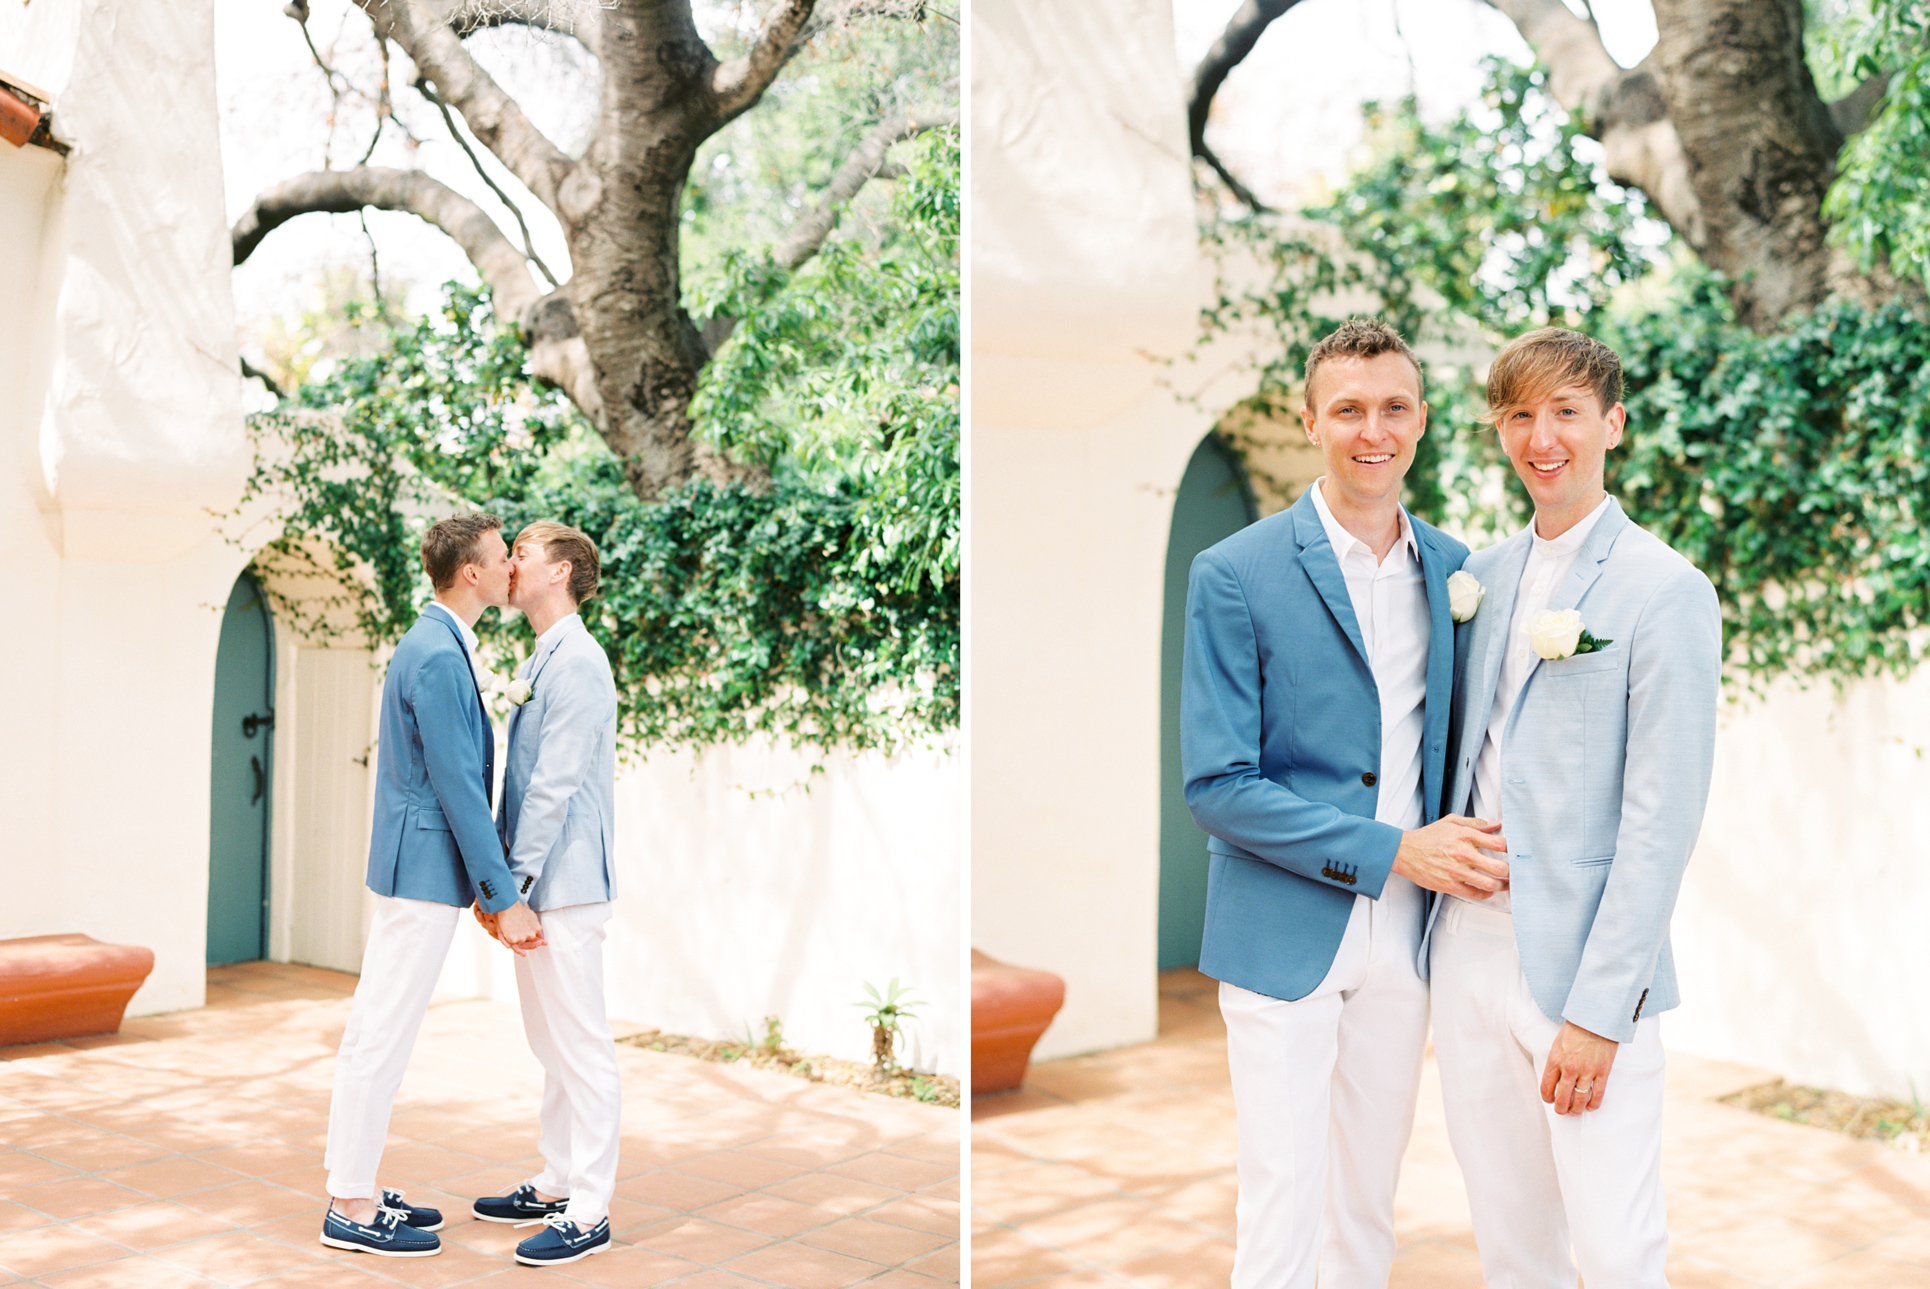 Belmond El Encanto Santa Barbara Wedding Photographer